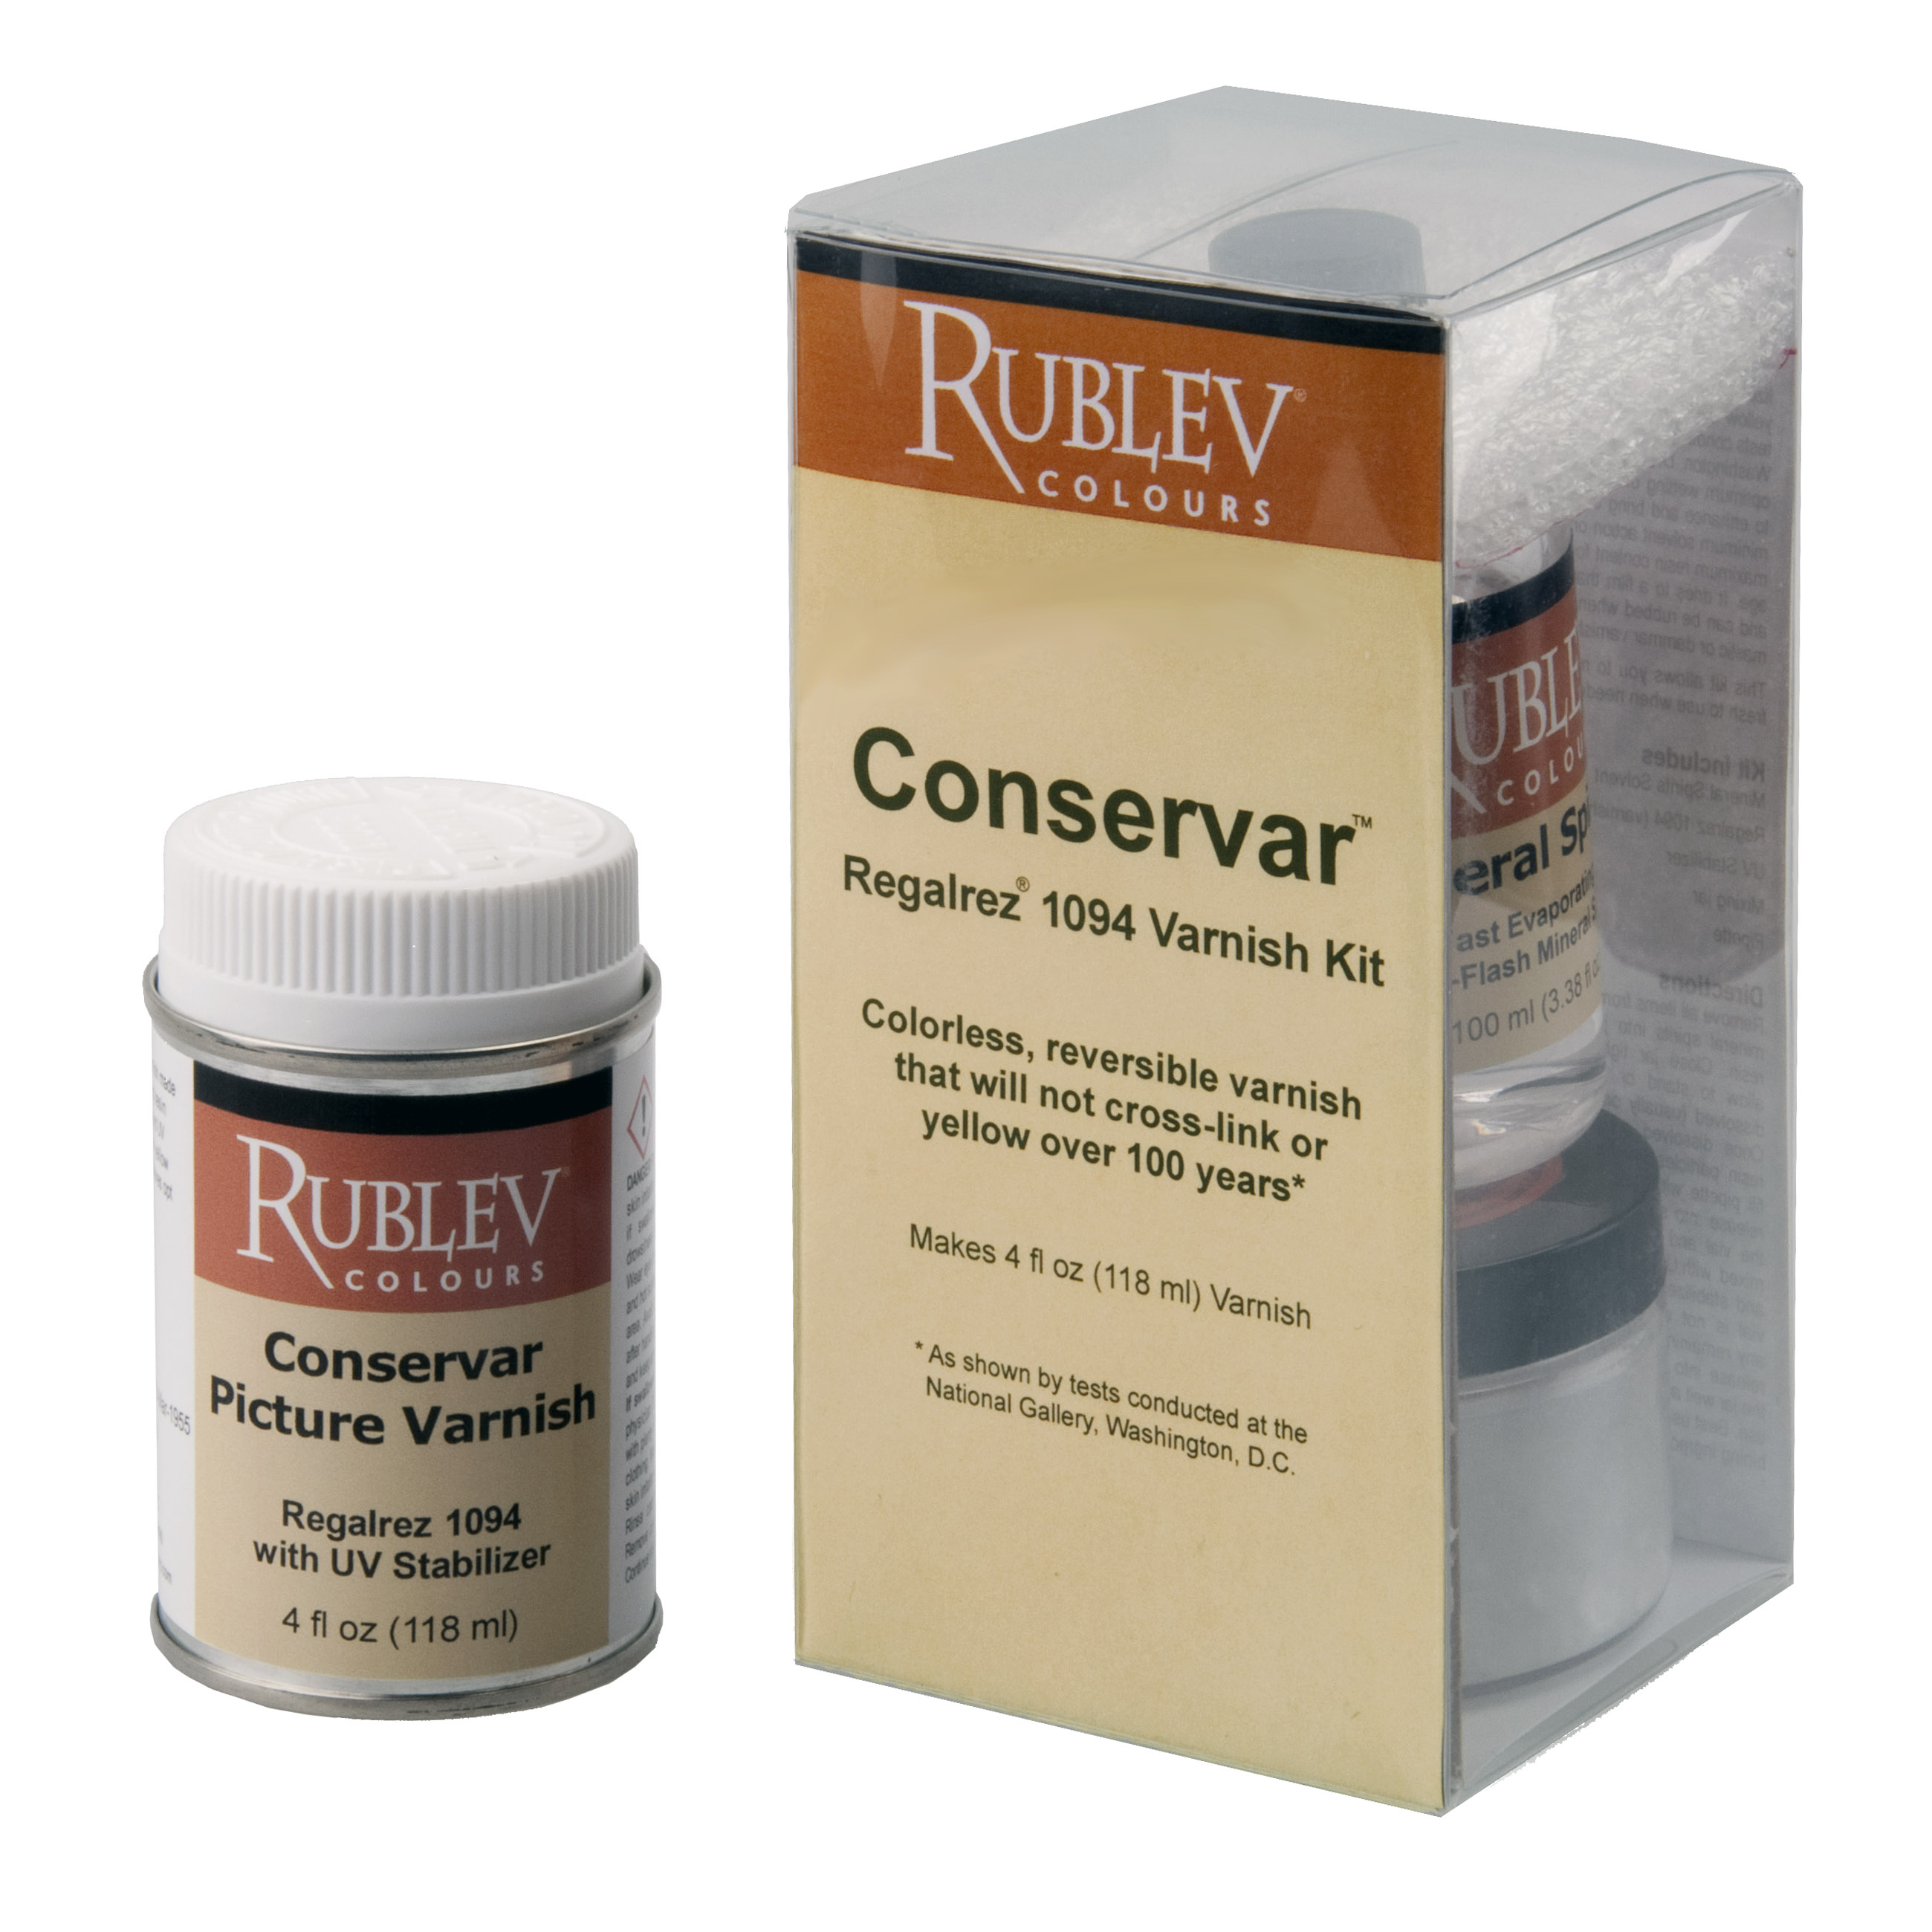 Conservar Varnishes and Varnish Kits